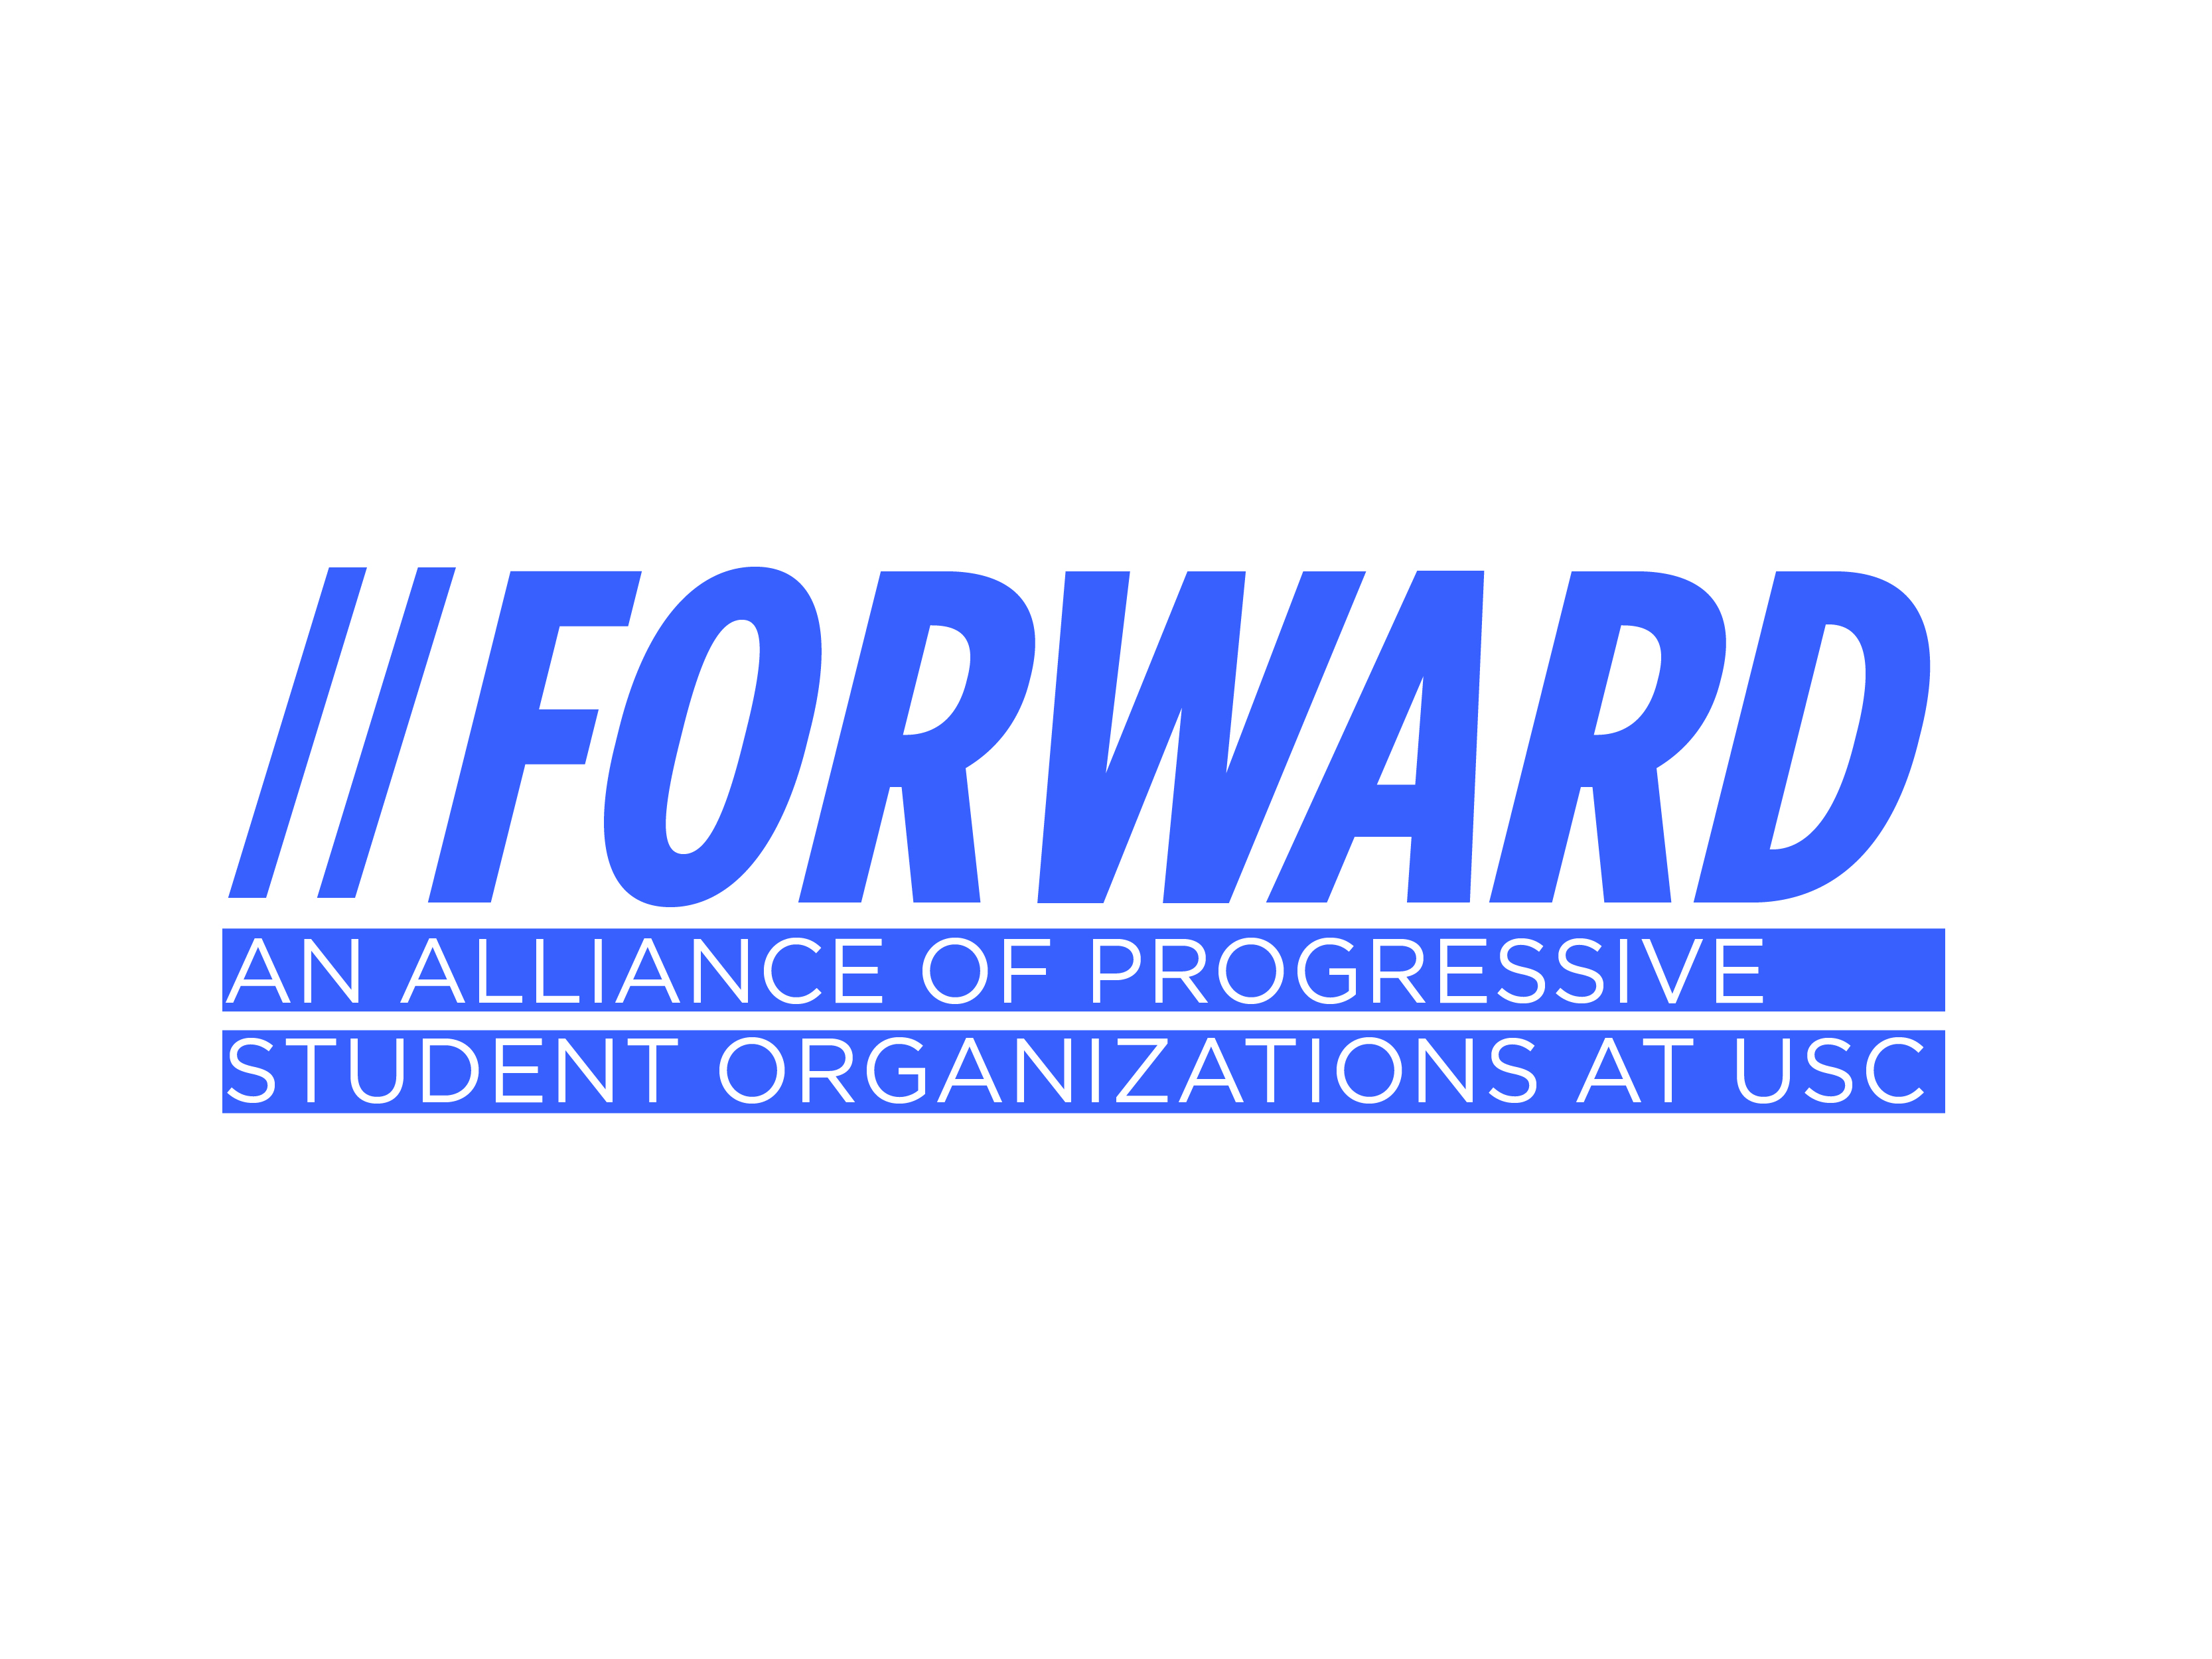 Forwardlogo